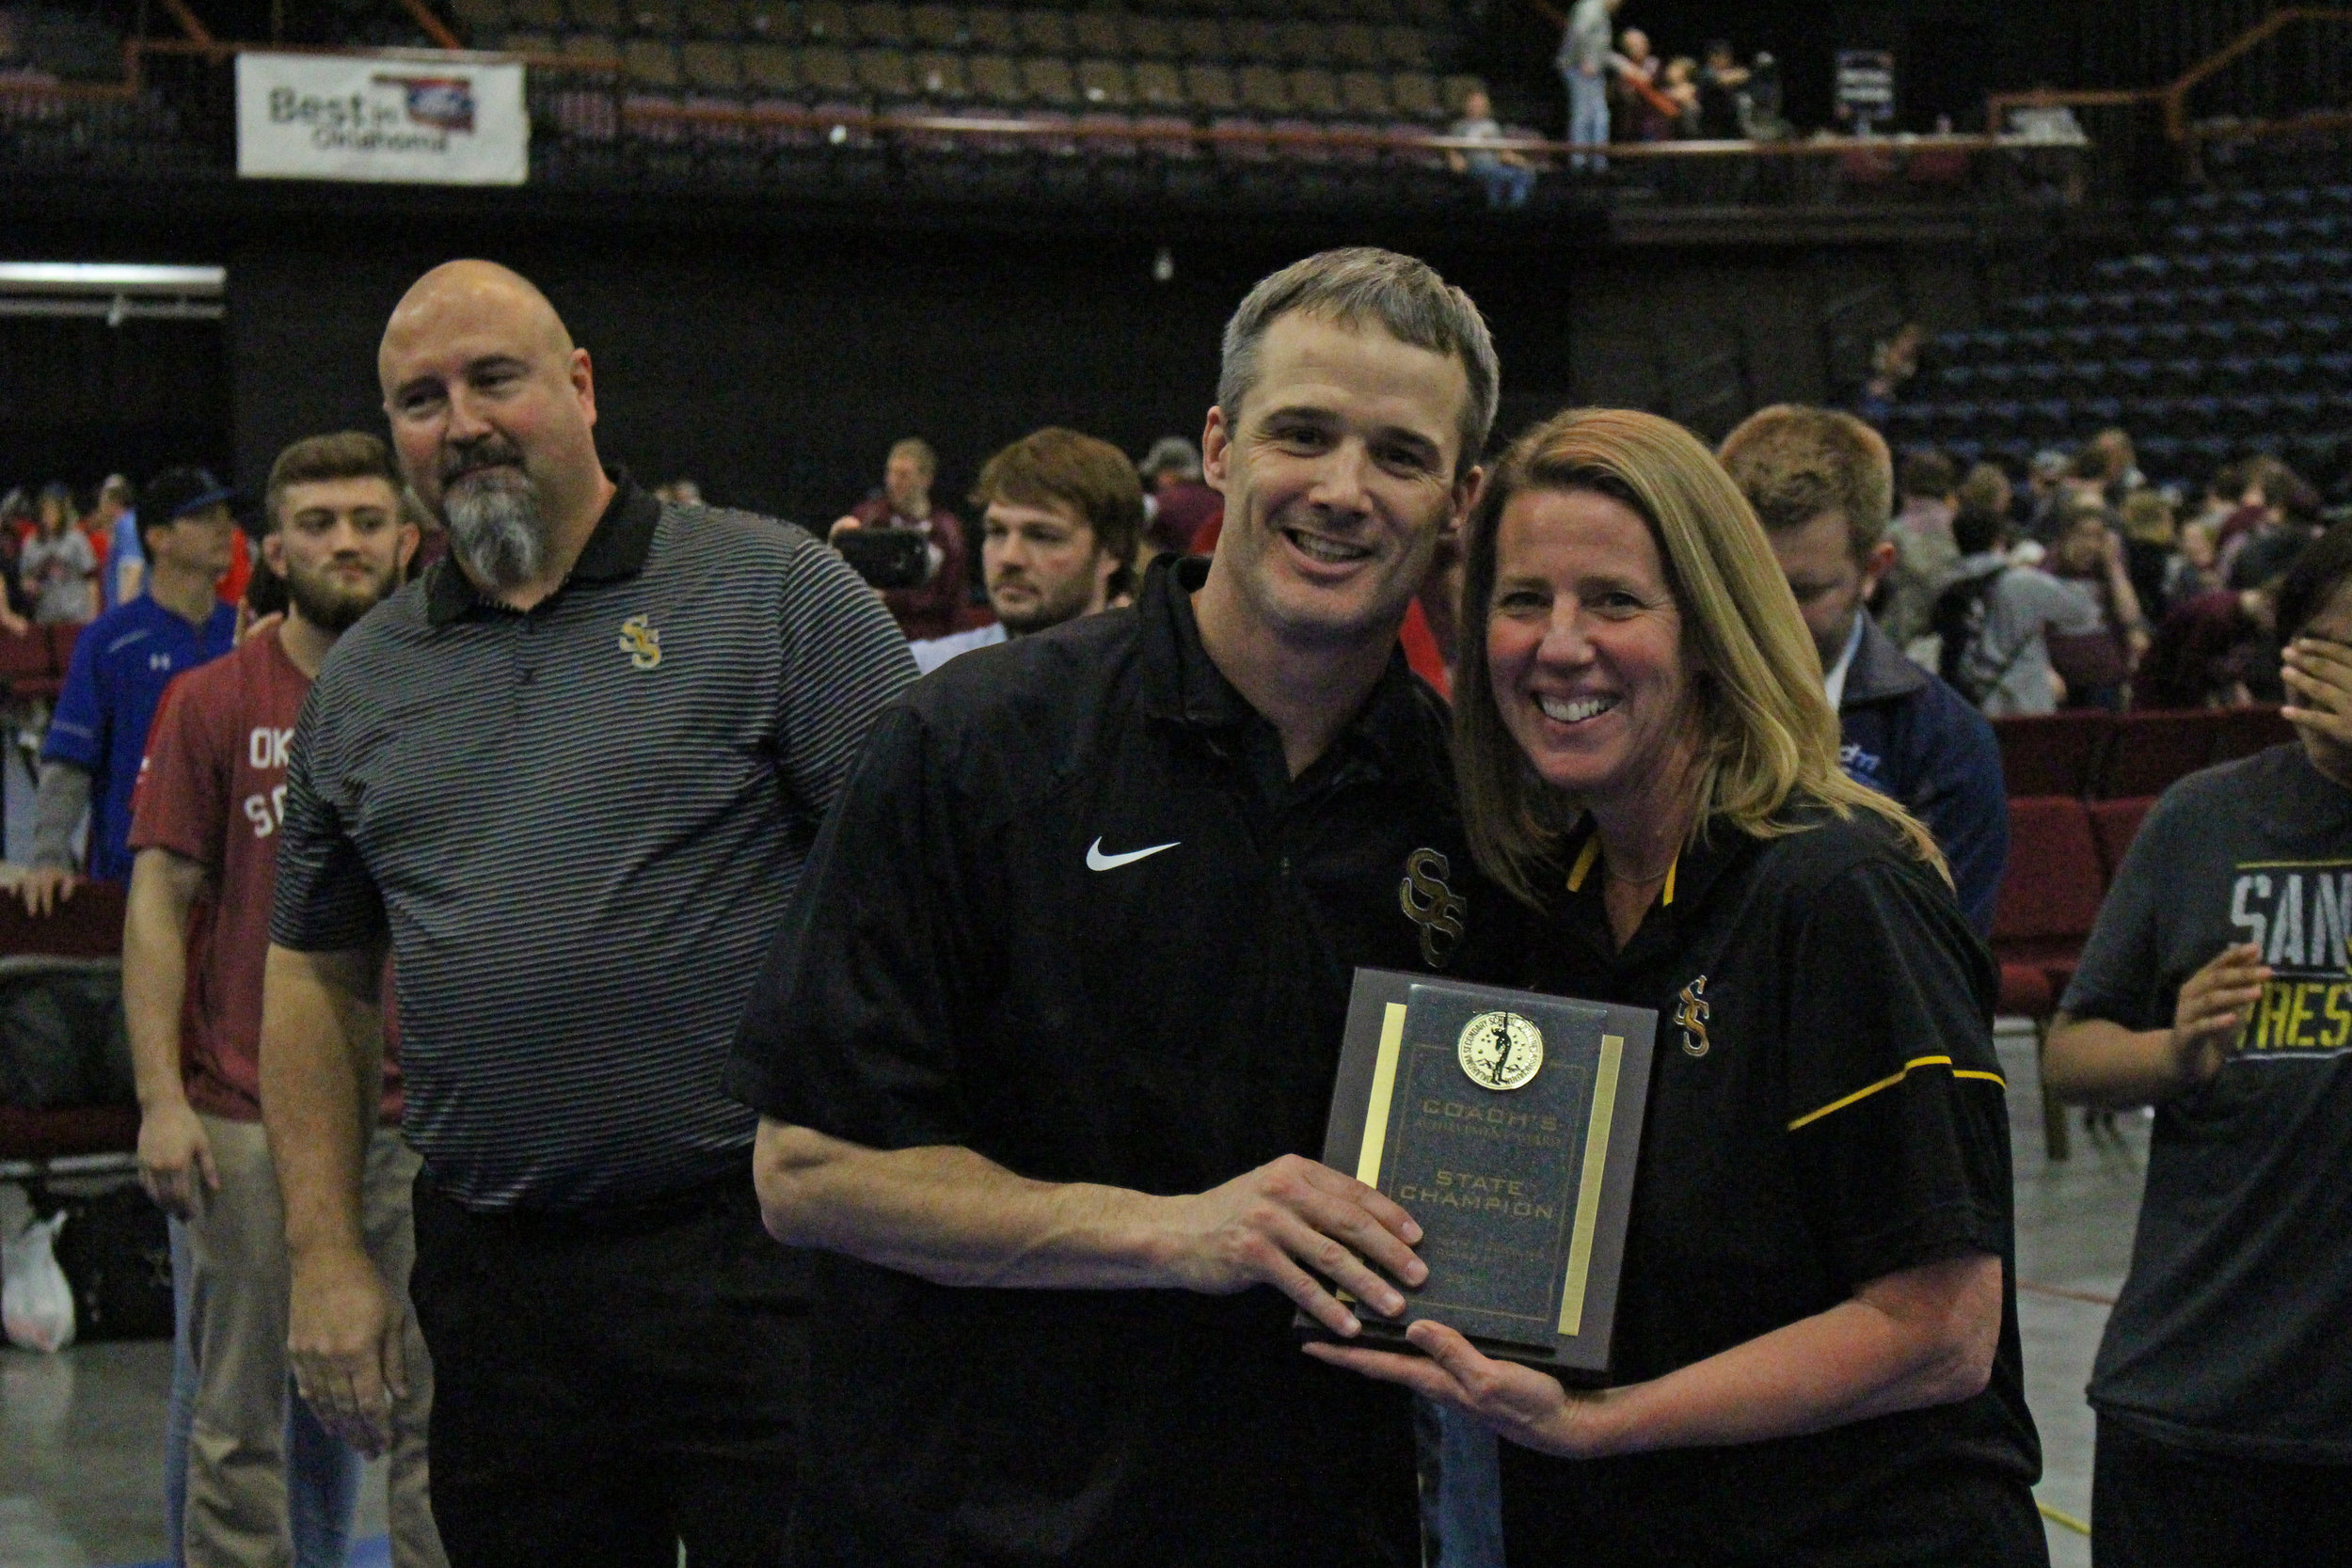 Head Coach Kelly Smith is presented with the Coach's State Championship plaque by Sand Springs Superintendent Sherry Durkee.